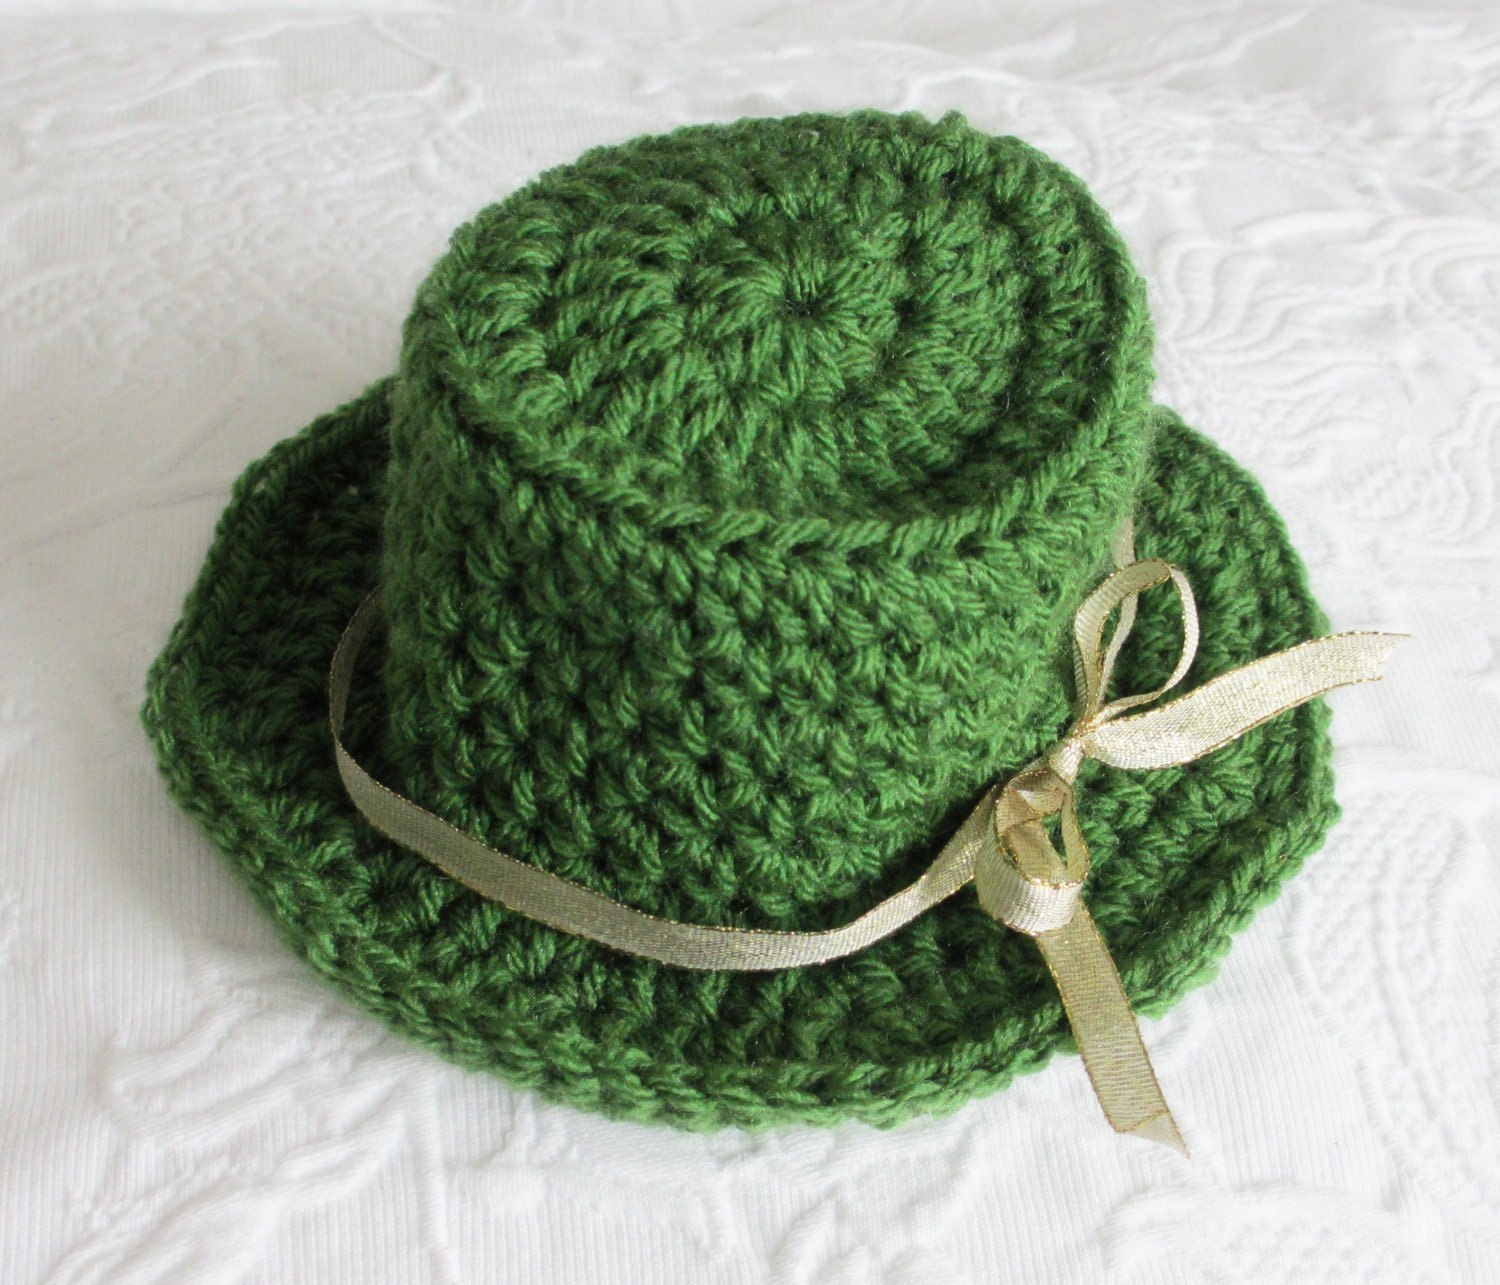 Knitting Pattern Top Hat : CURLY TOP CROCHETED HAT PATTERN - Crochet and Knitting Patterns